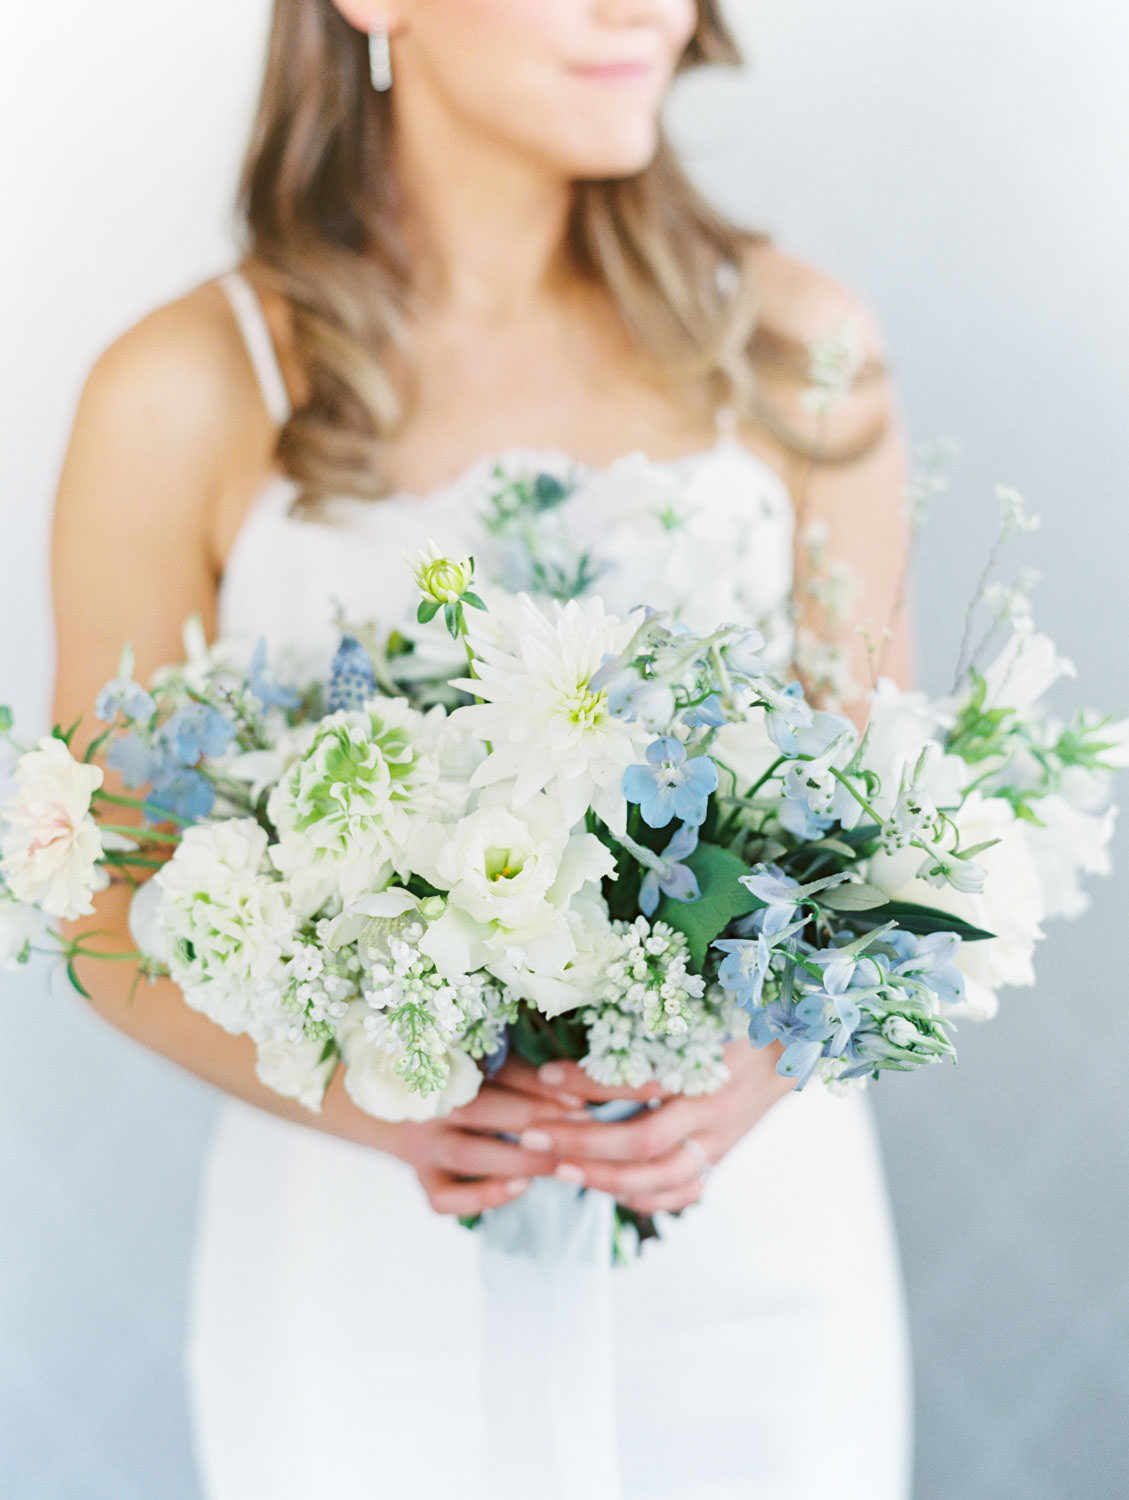 Glamorous and chic bride holding a bridal bouquet made with ivory, blue, and green flowers on film, Intimate Wedding at La Valencia Hotel in La Jolla by Cavin Elizabeth Photography